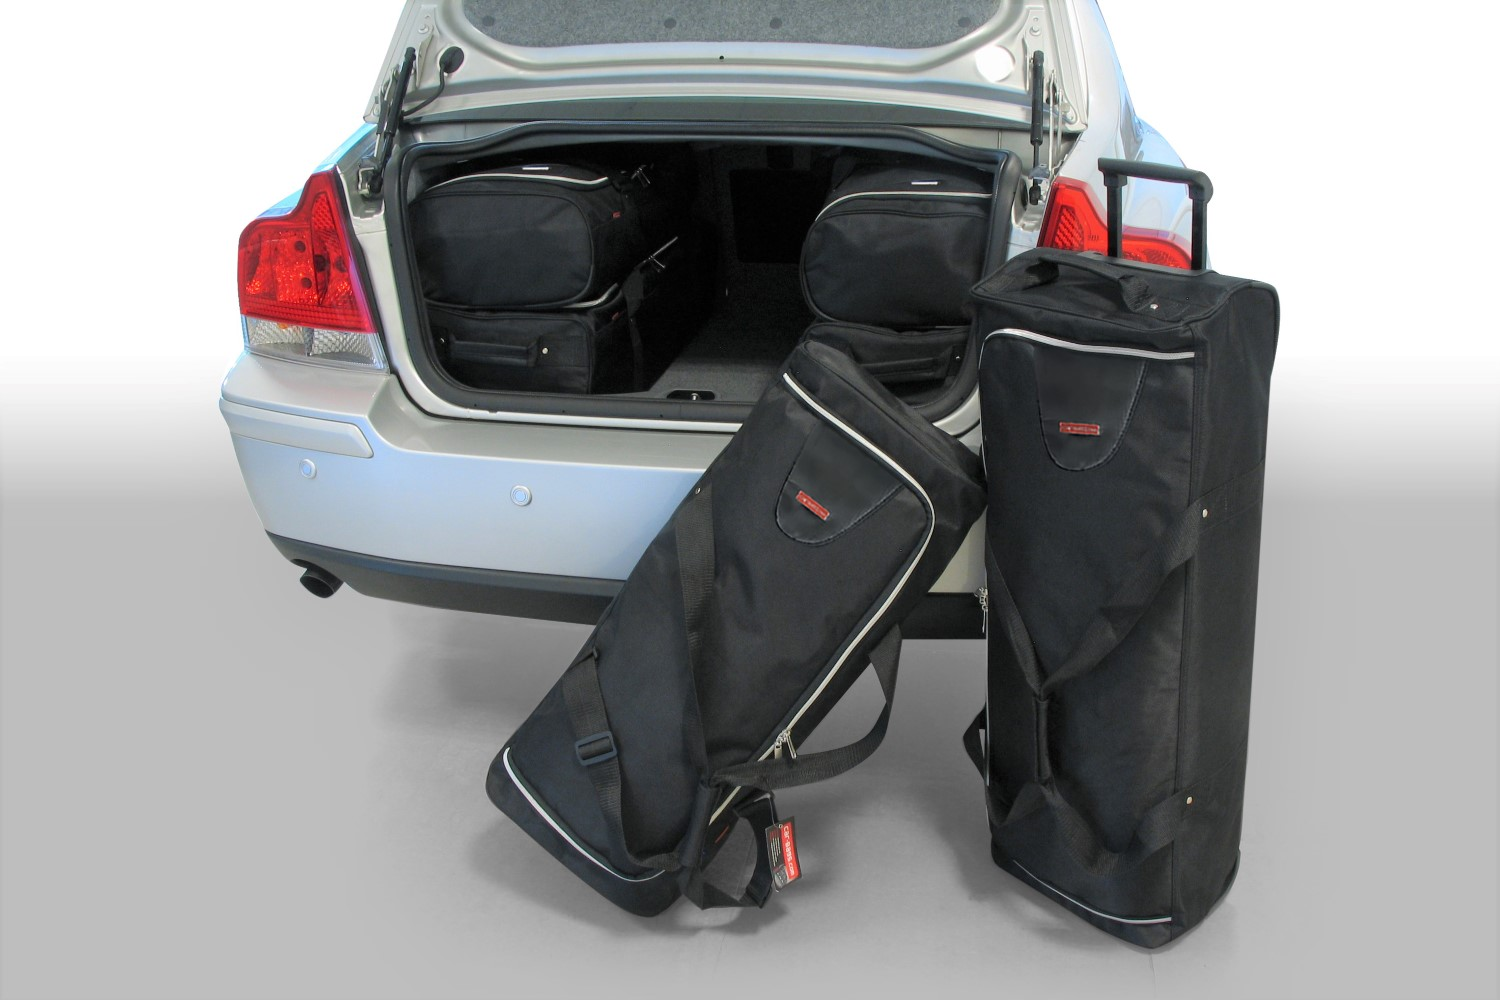 Volvo S60 I 2000-2010 4 door Car-Bags.com travel bag set (1)